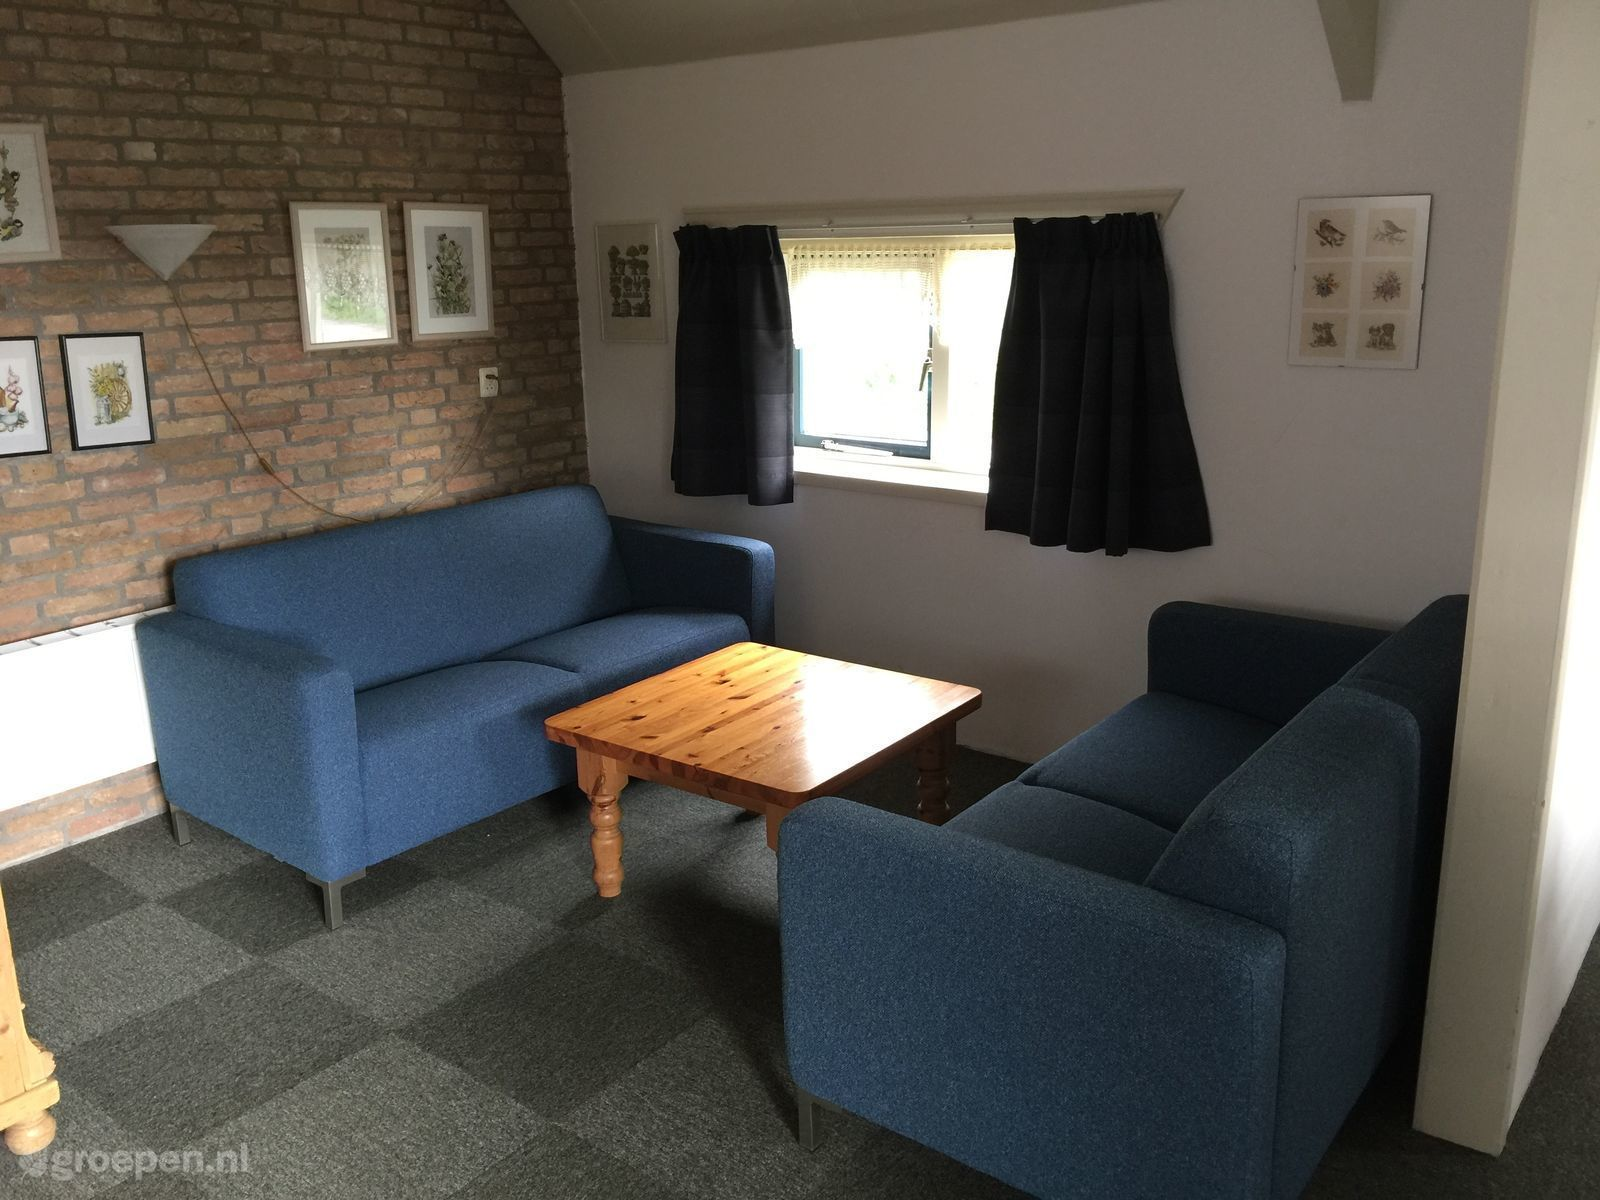 Group accommodation Vierhuizen